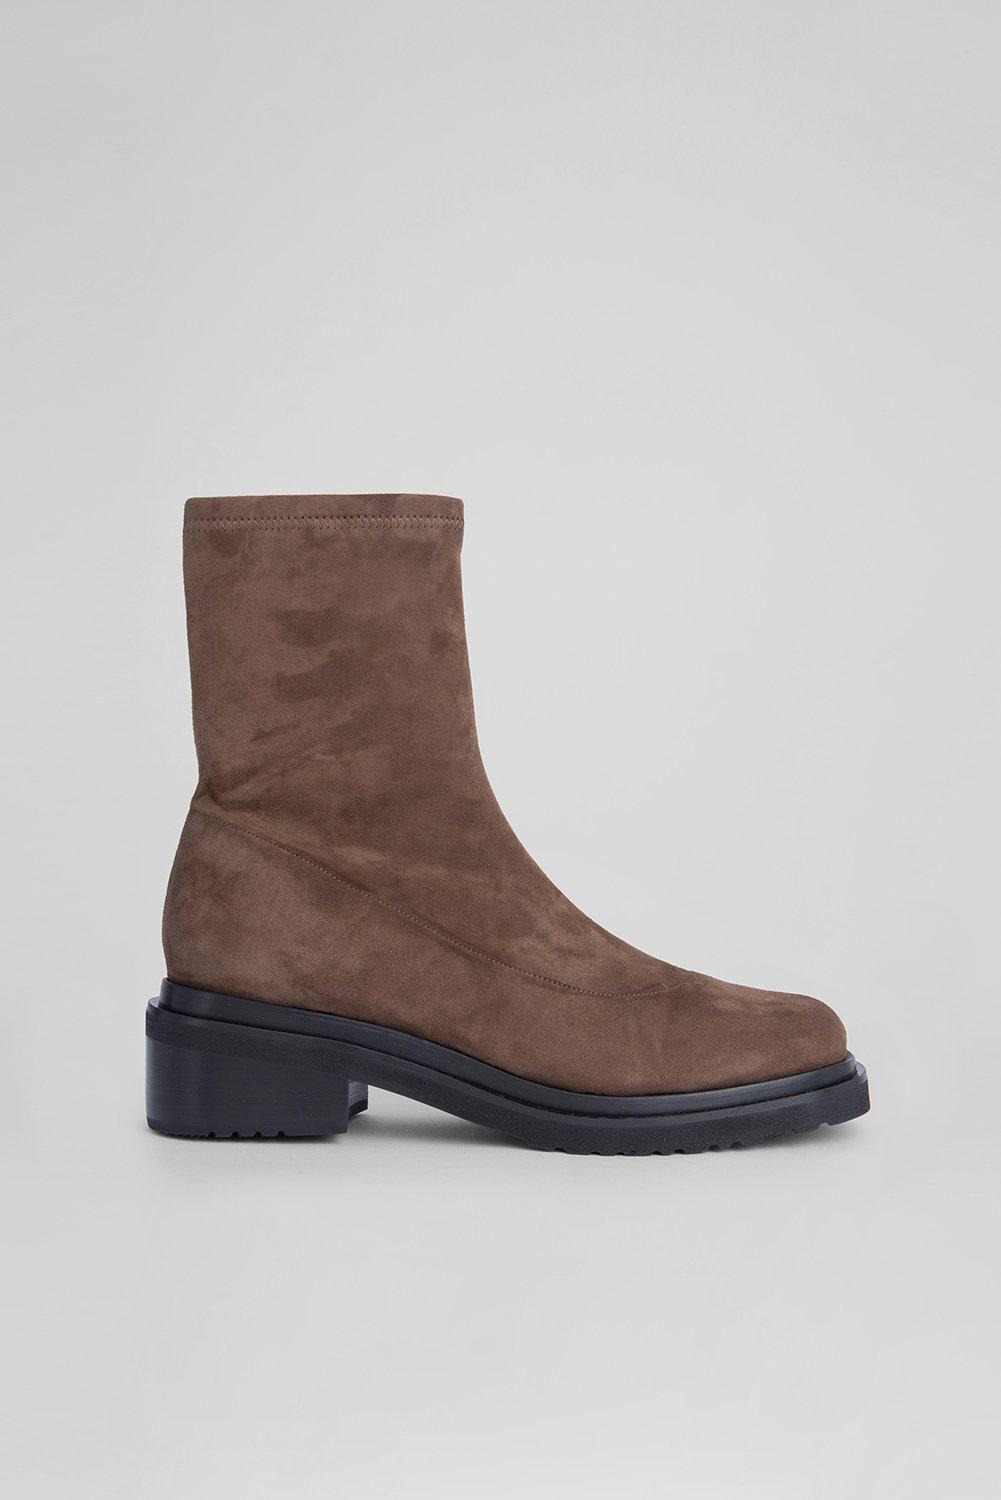 Kah Wood Stretch Suede Leather